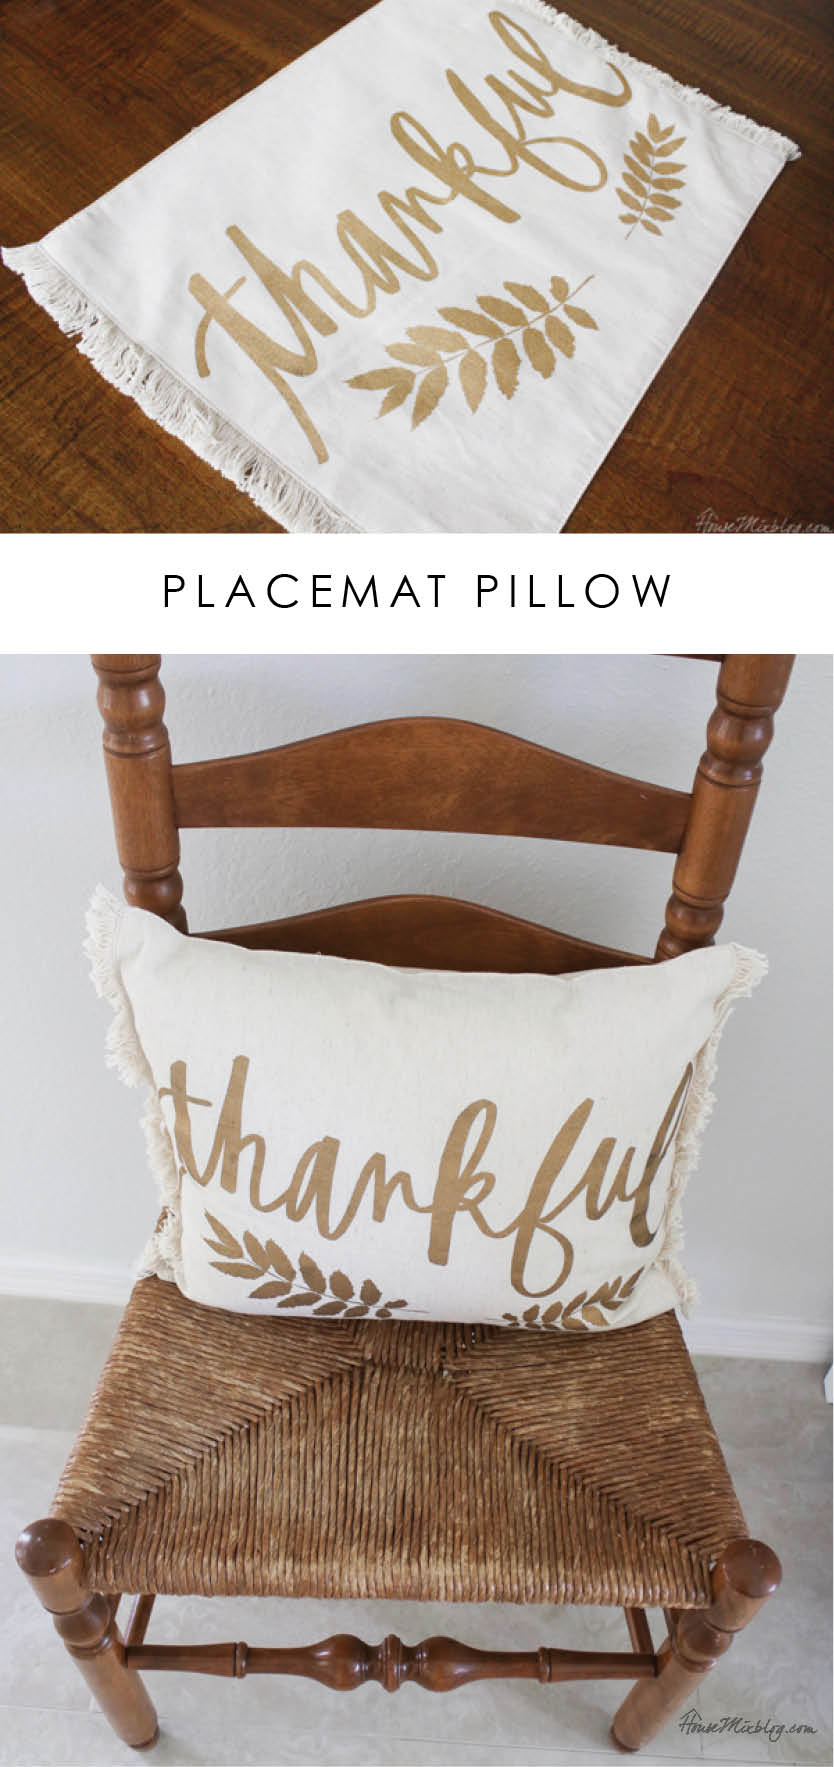 placemat pillow DIY - 5 dollars and 10 minutes